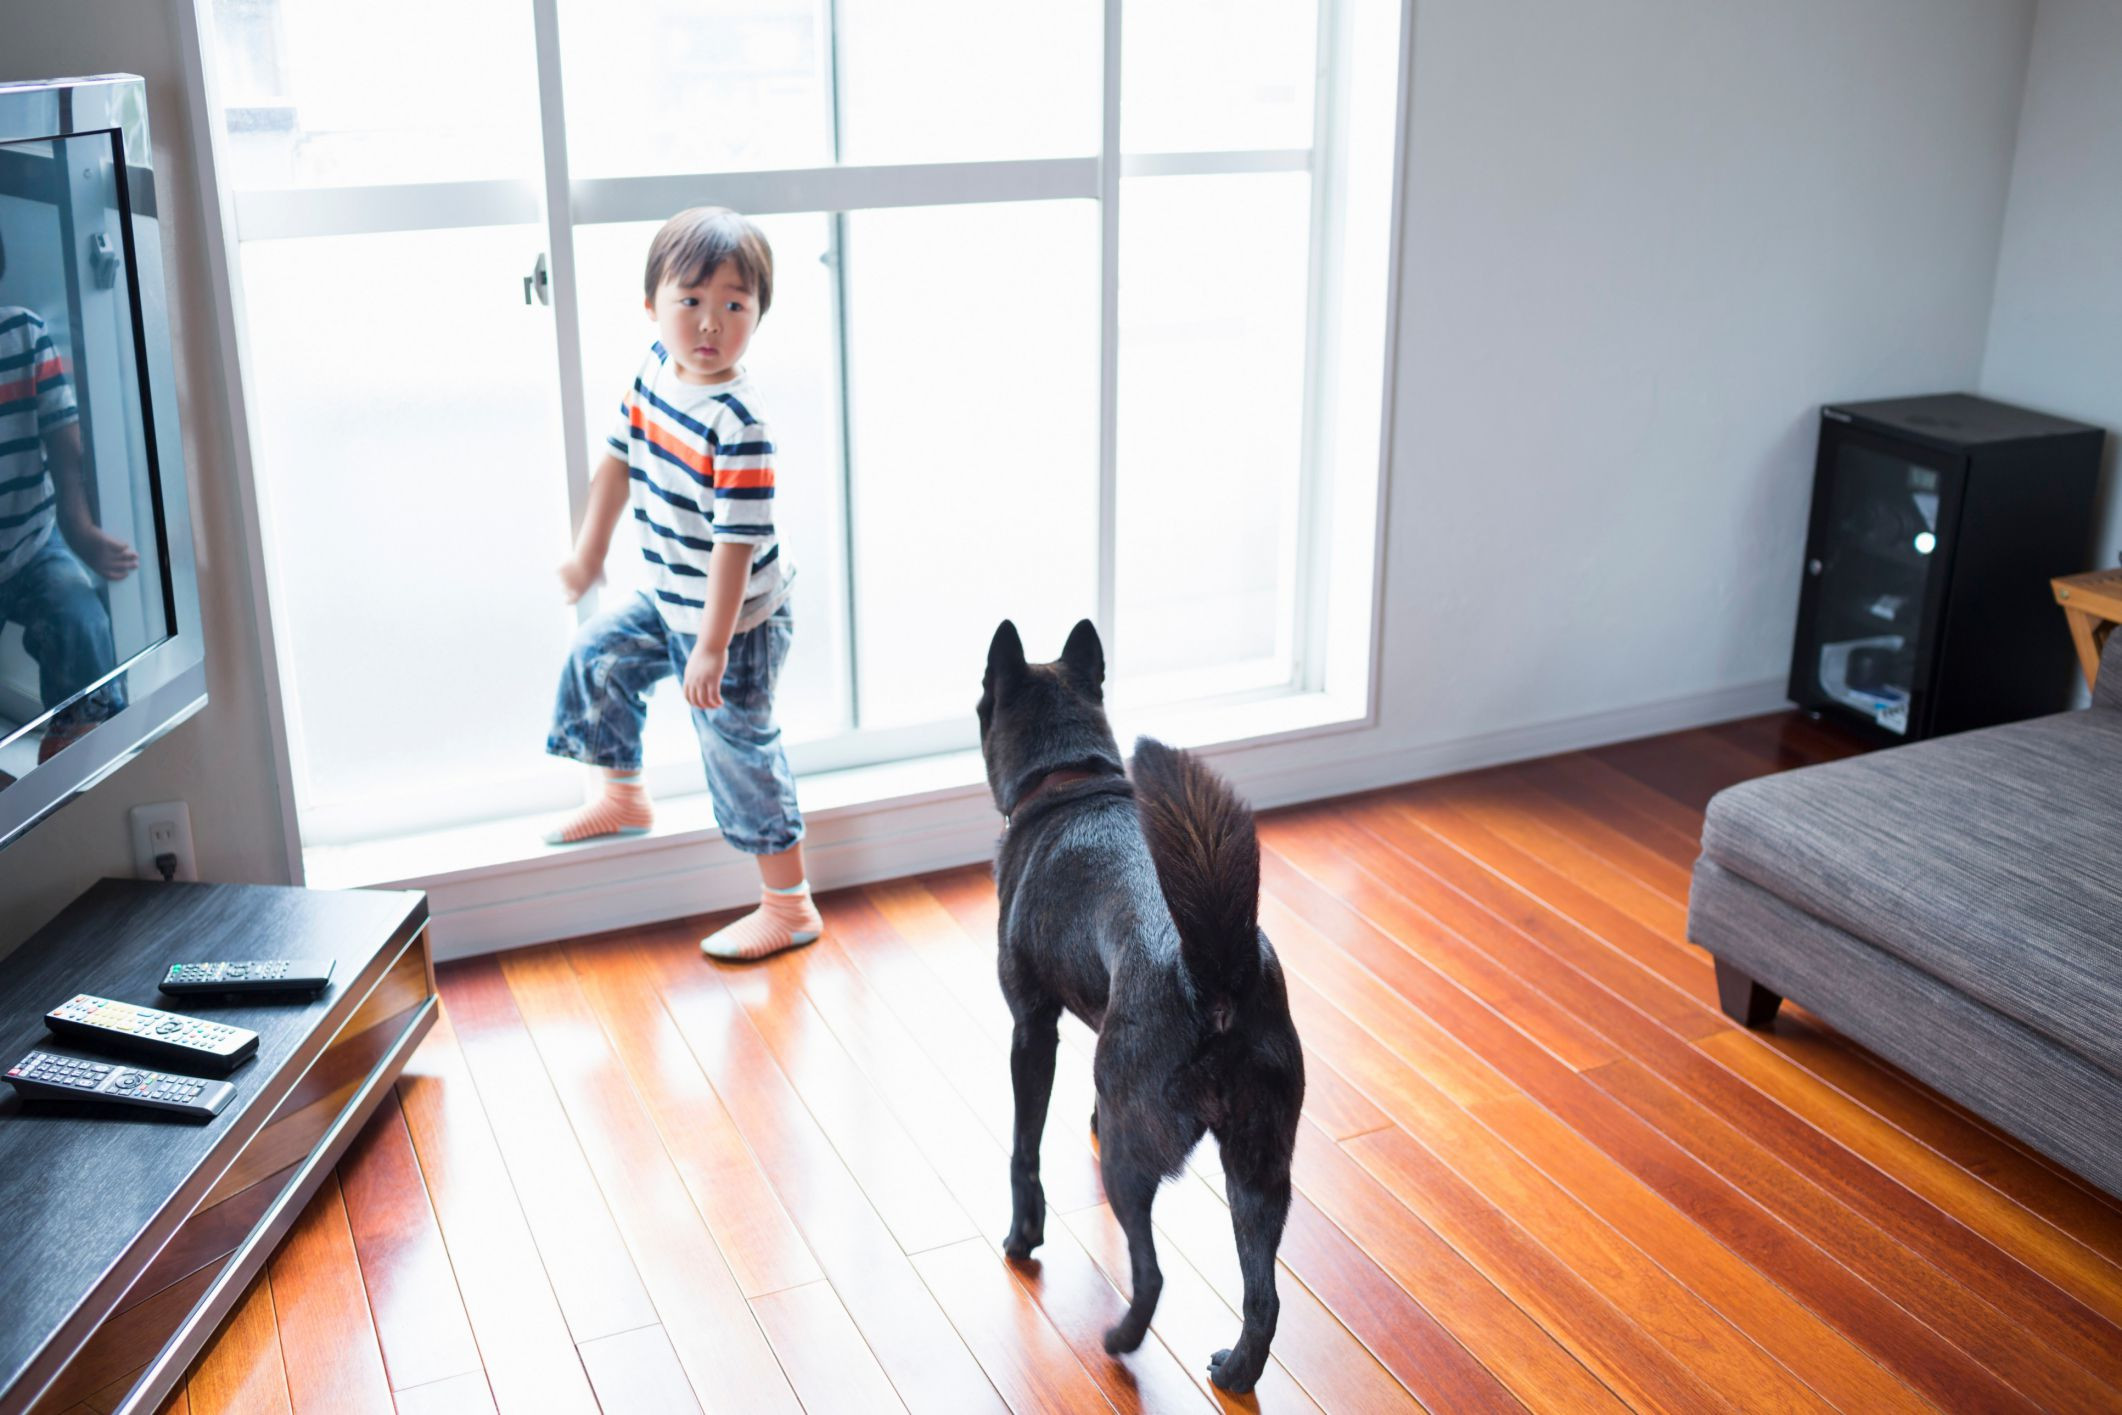 16 Fantastic Hardwood Flooring Types Pets 2021 free download hardwood flooring types pets of the most durable flooring you can install with dog on wooden floor 465892145 56a4a1705f9b58b7d0d7e64e